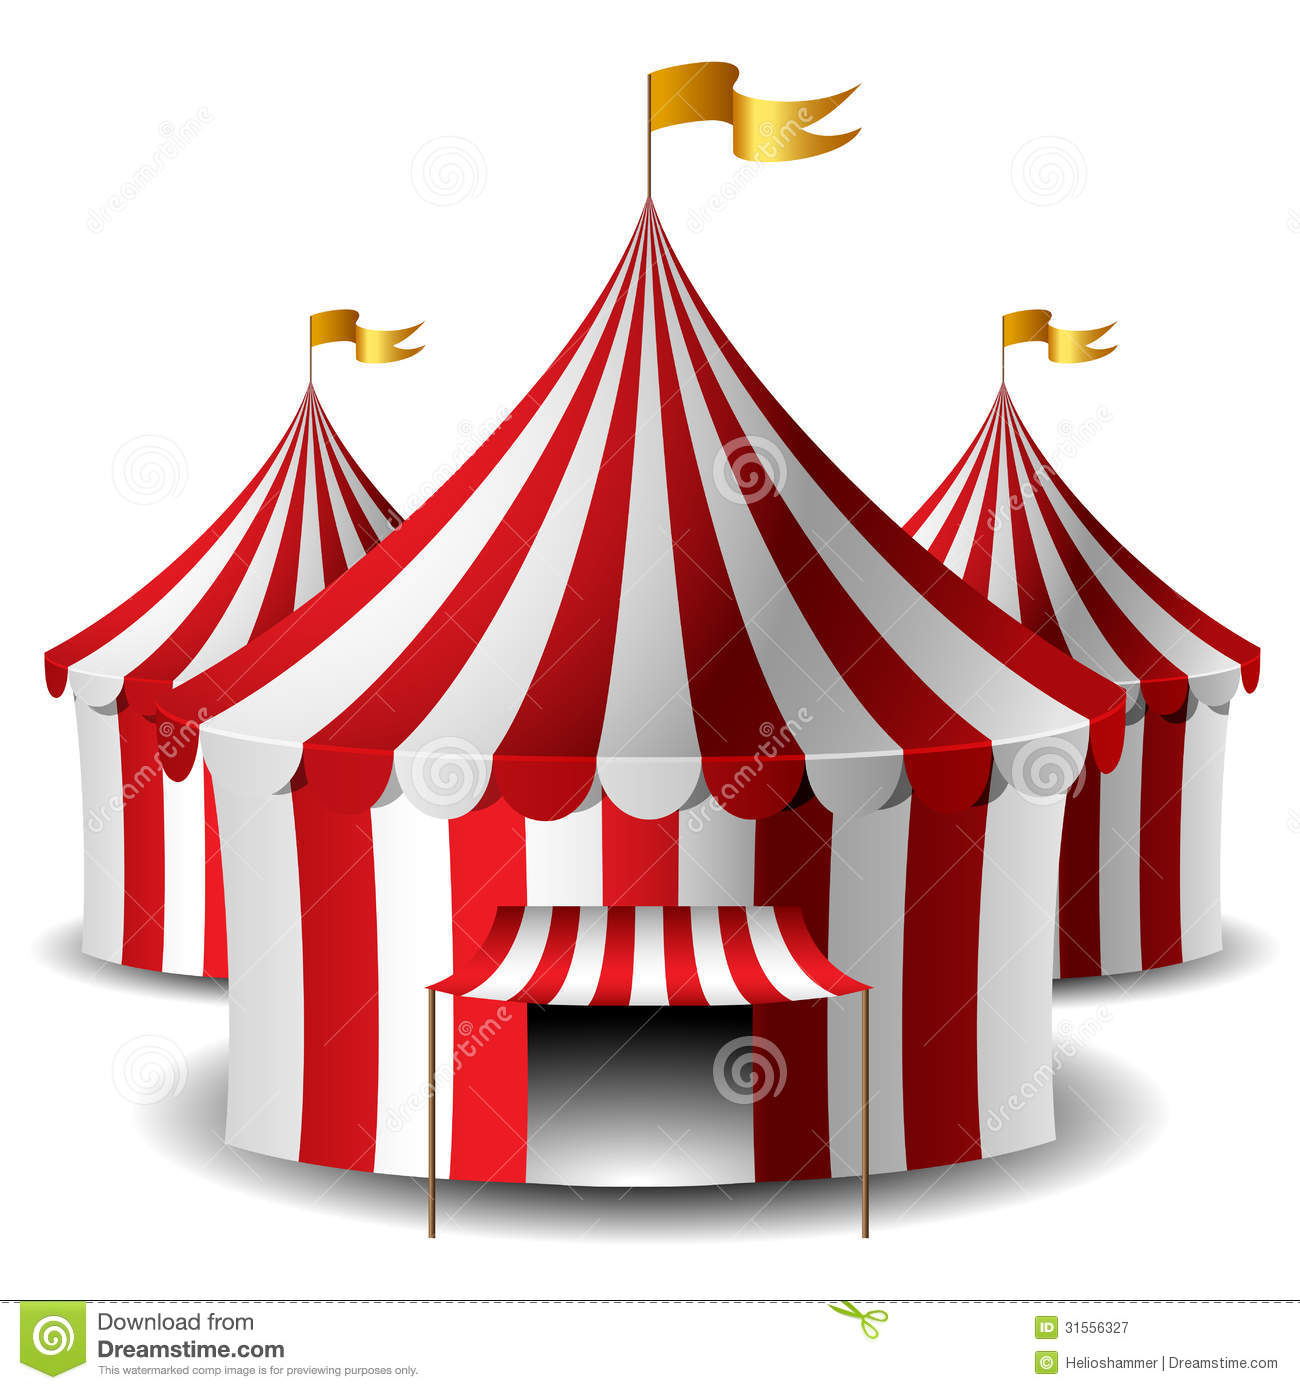 circus tent royalty free stock photography image 31556327 circus tent clip art png circus tent clip art illustration vector free